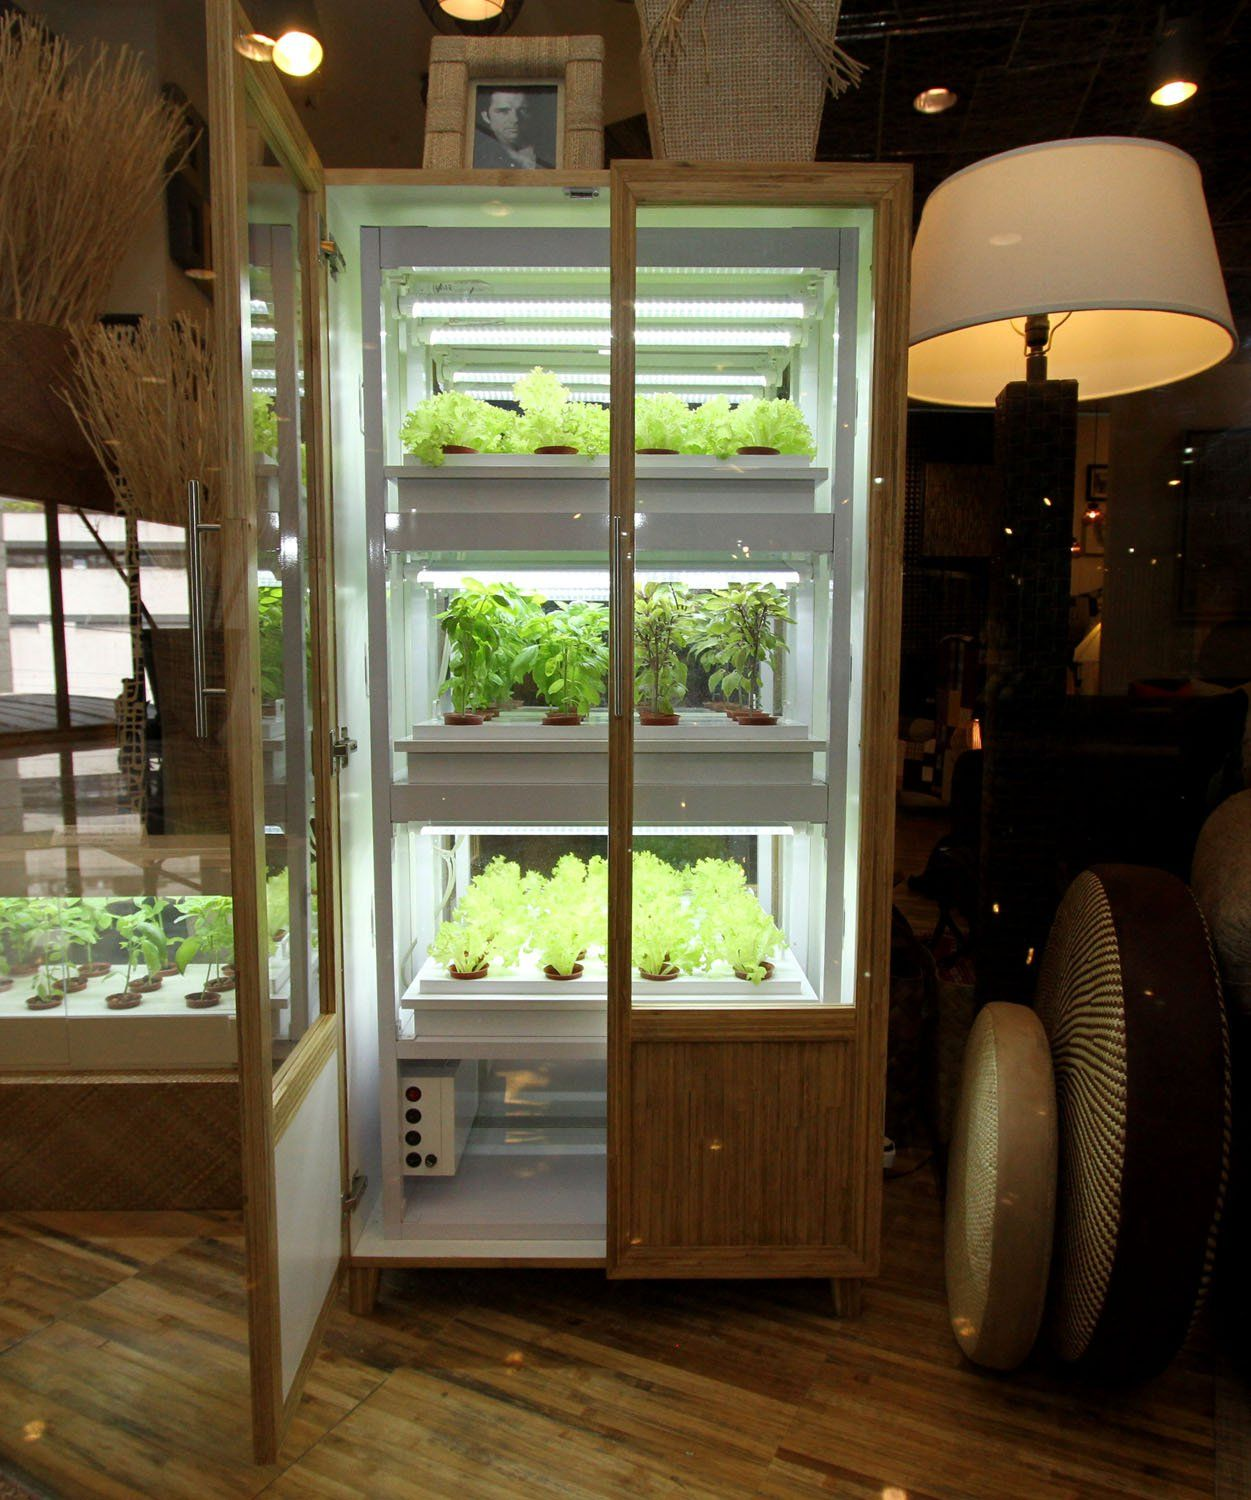 Creating Our First Vegetable Garden Advice Please: Grow Your Own Veggies–in A Cabinet, With No Soil